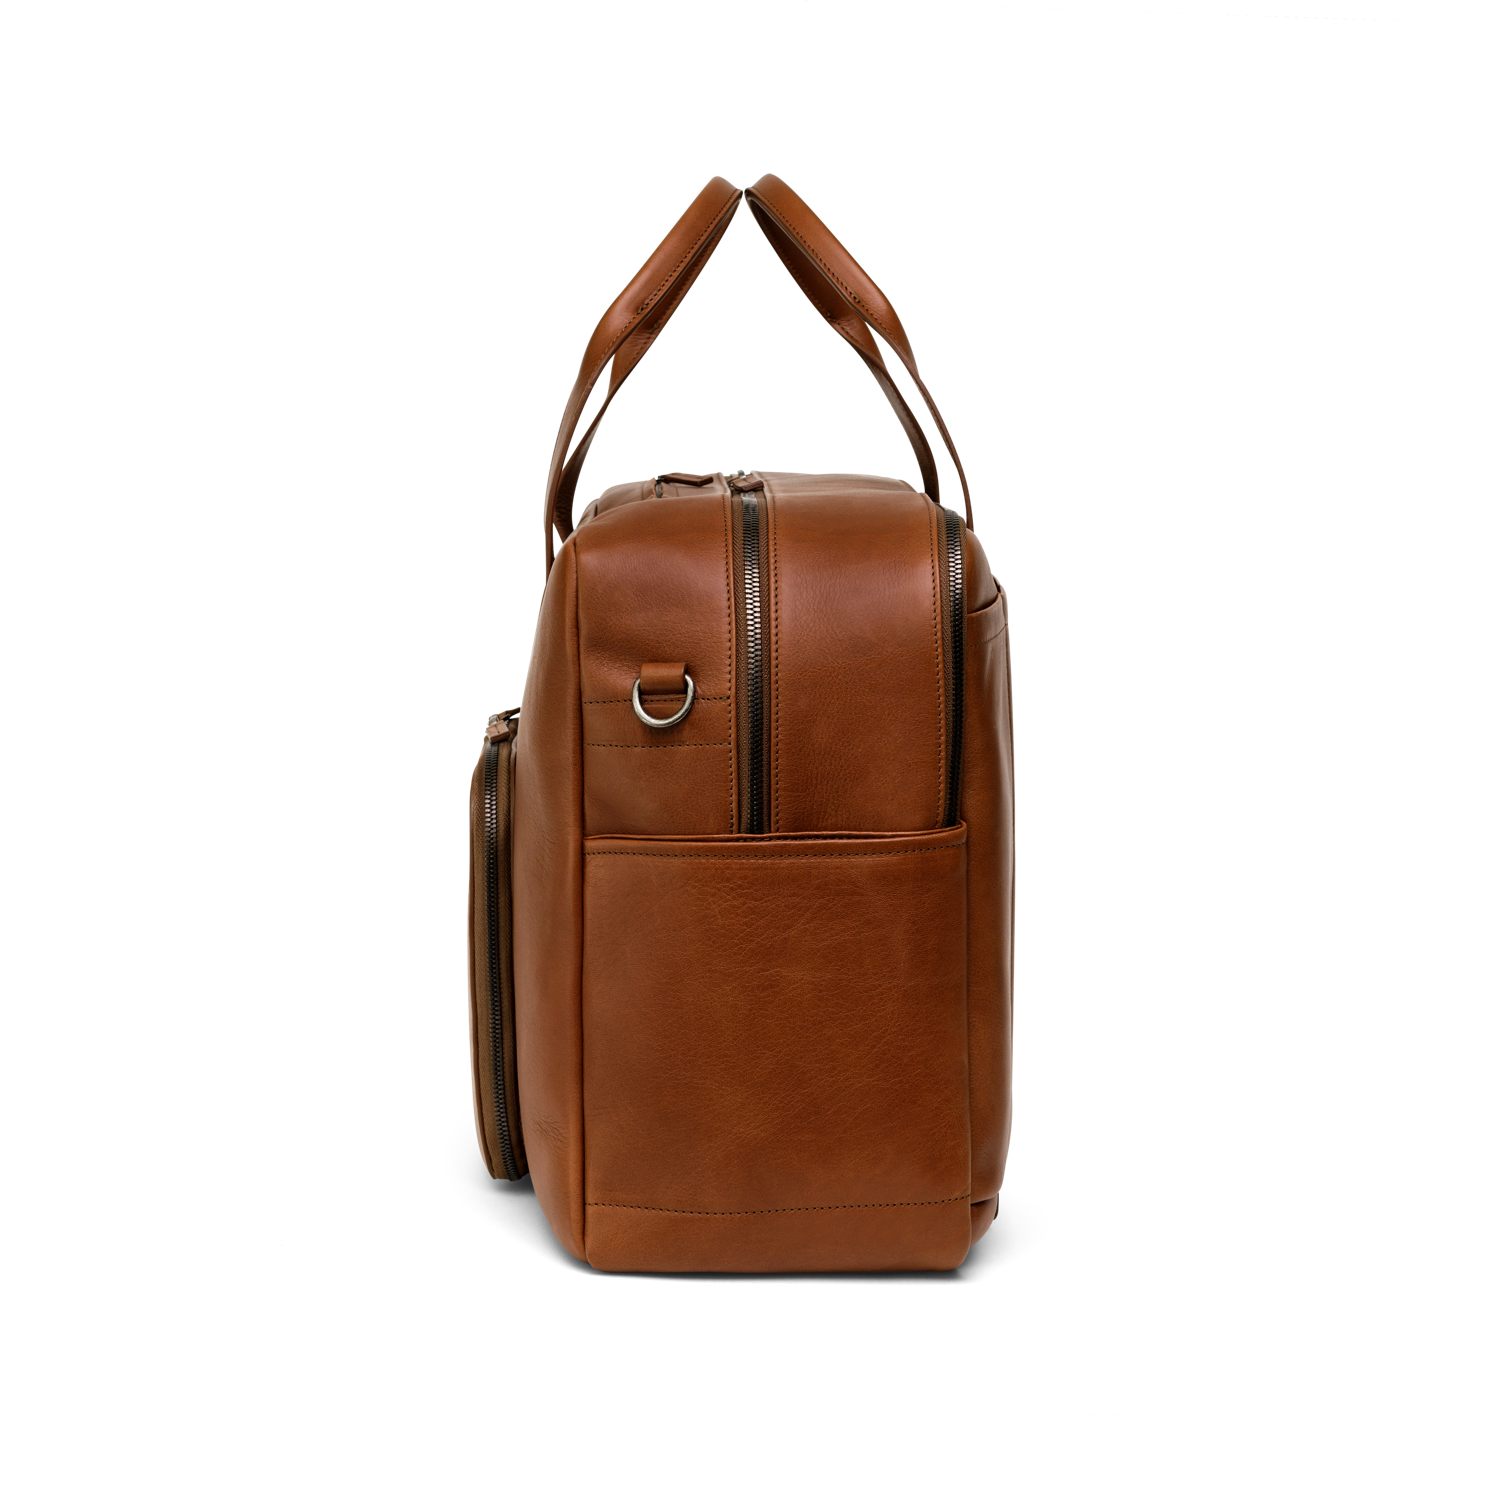 48e4a9302868 Our leather travel bag will keep you organized on-the-go. – thisisground